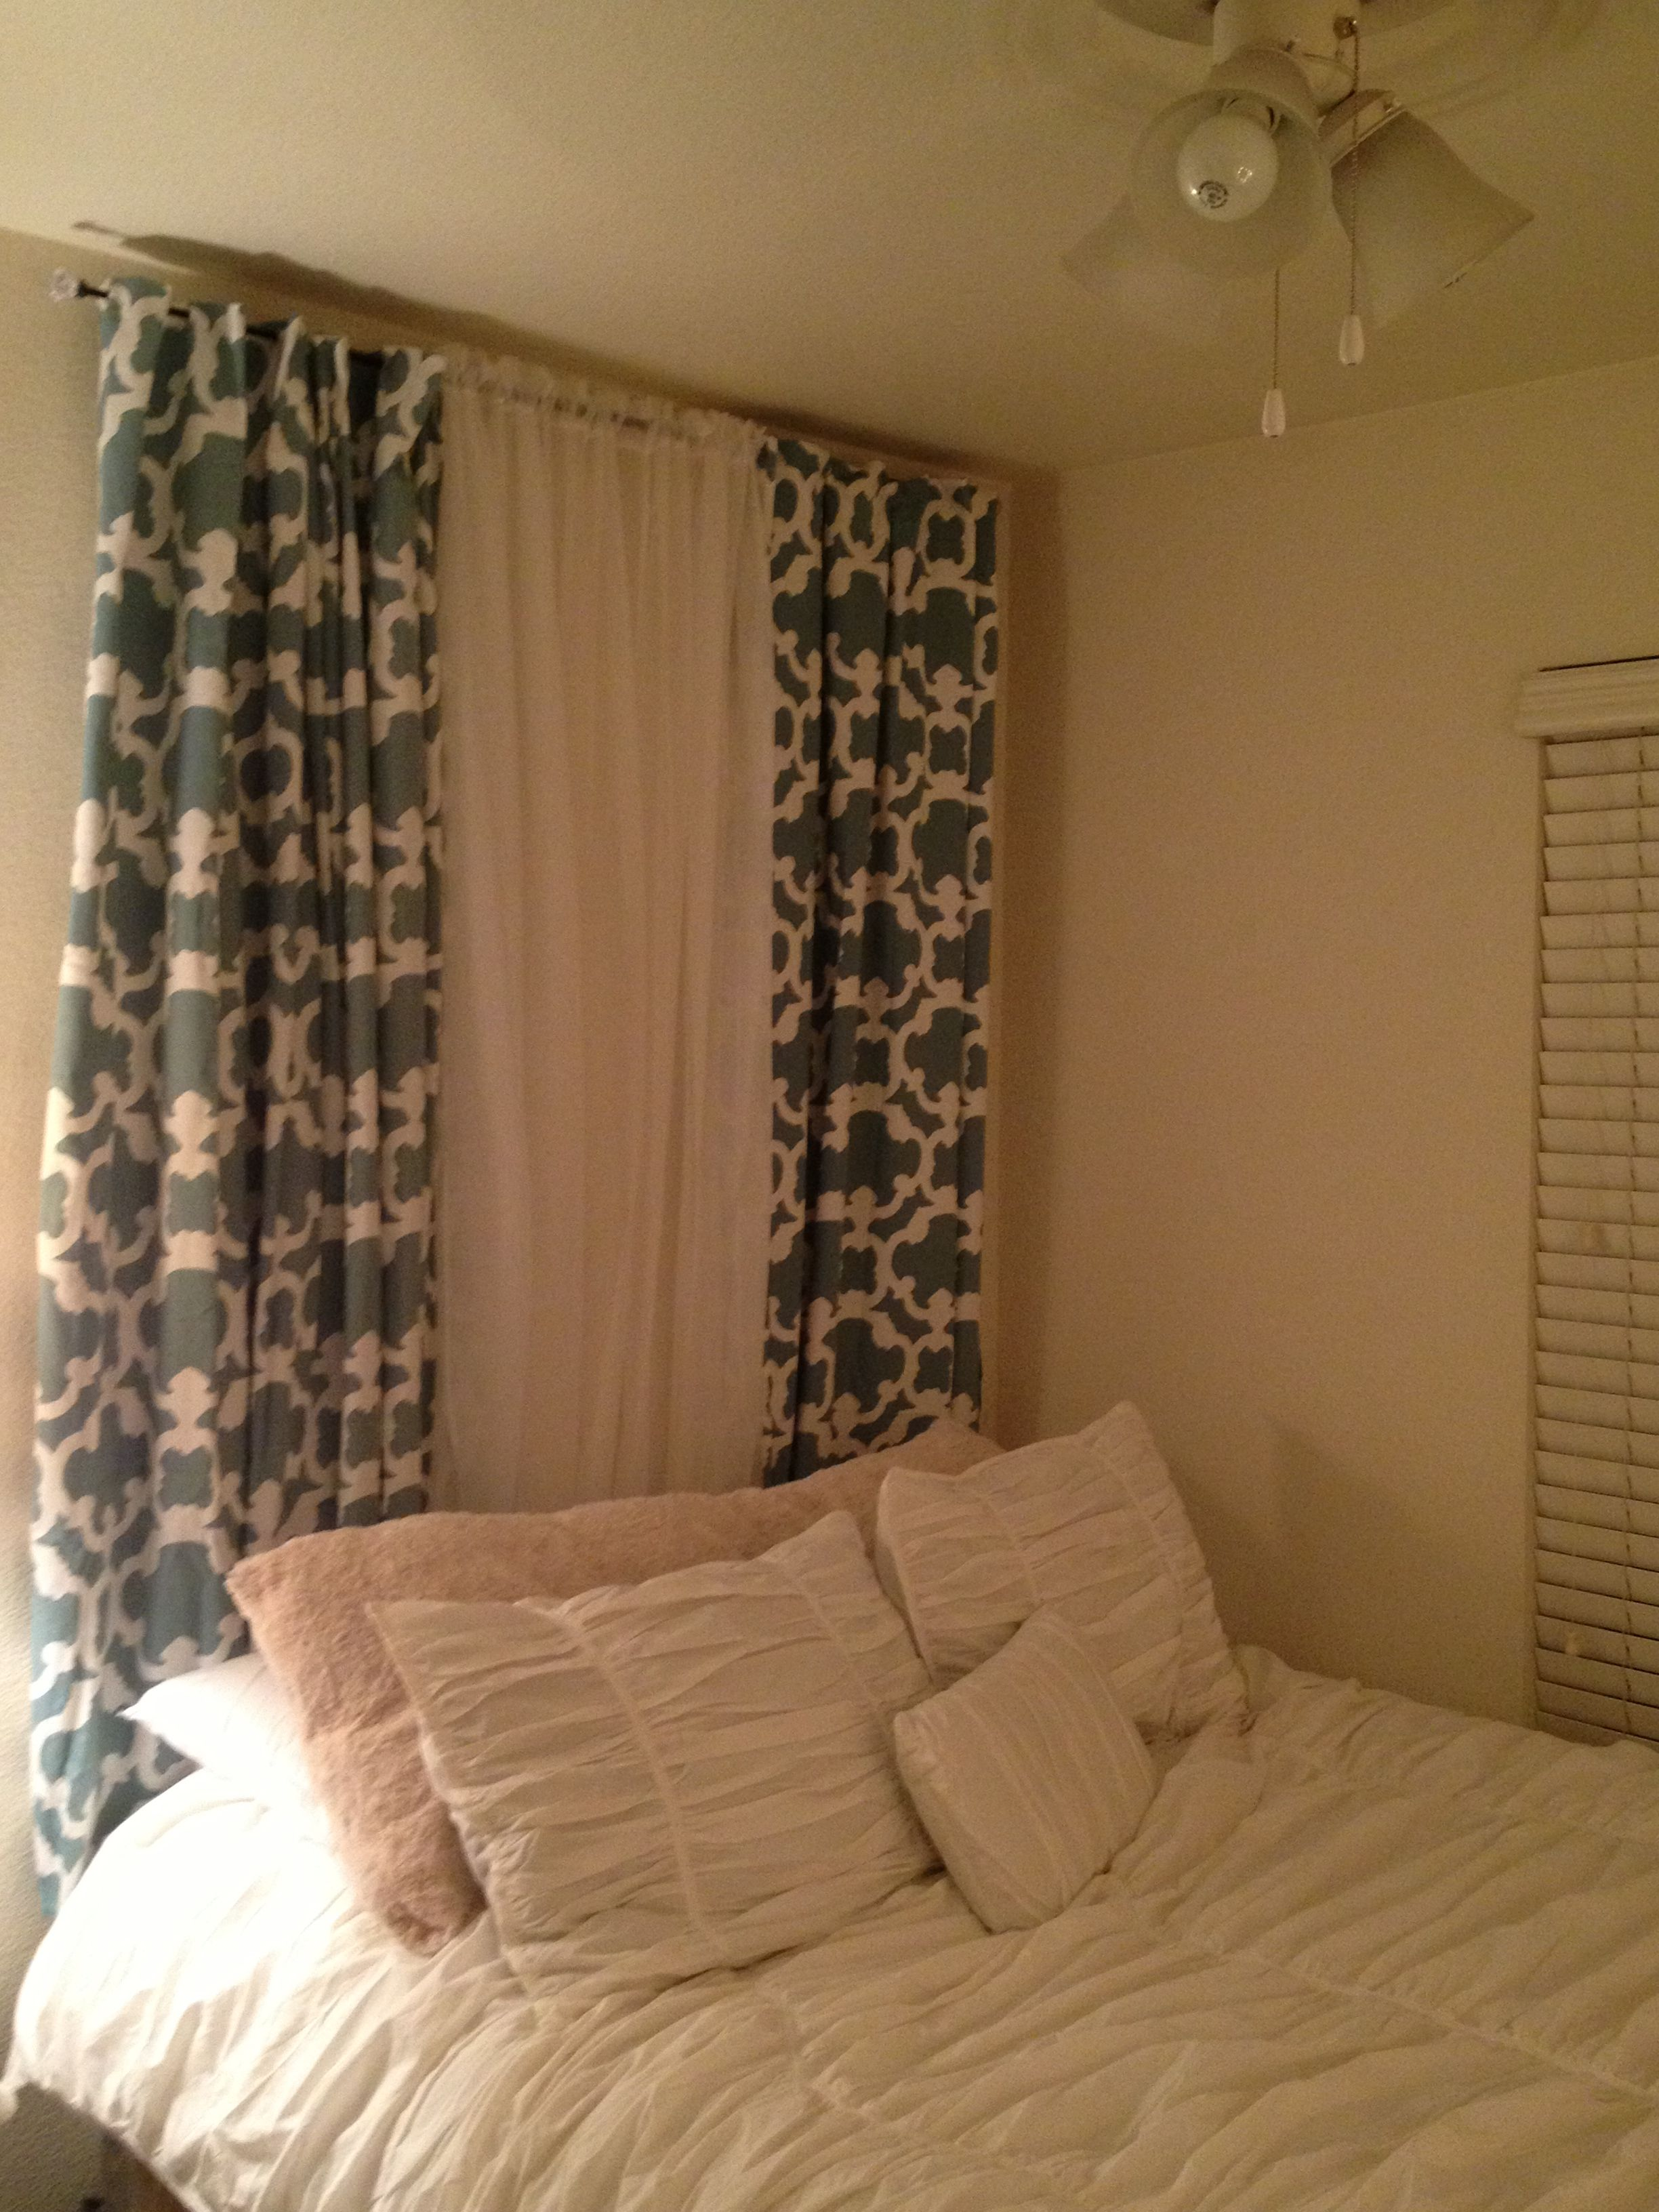 Diy Curtain Headboard Perfect To Add Color If You Cant Paint Your Walls Headboard Curtains Bedroom Diy Bedroom Makeover